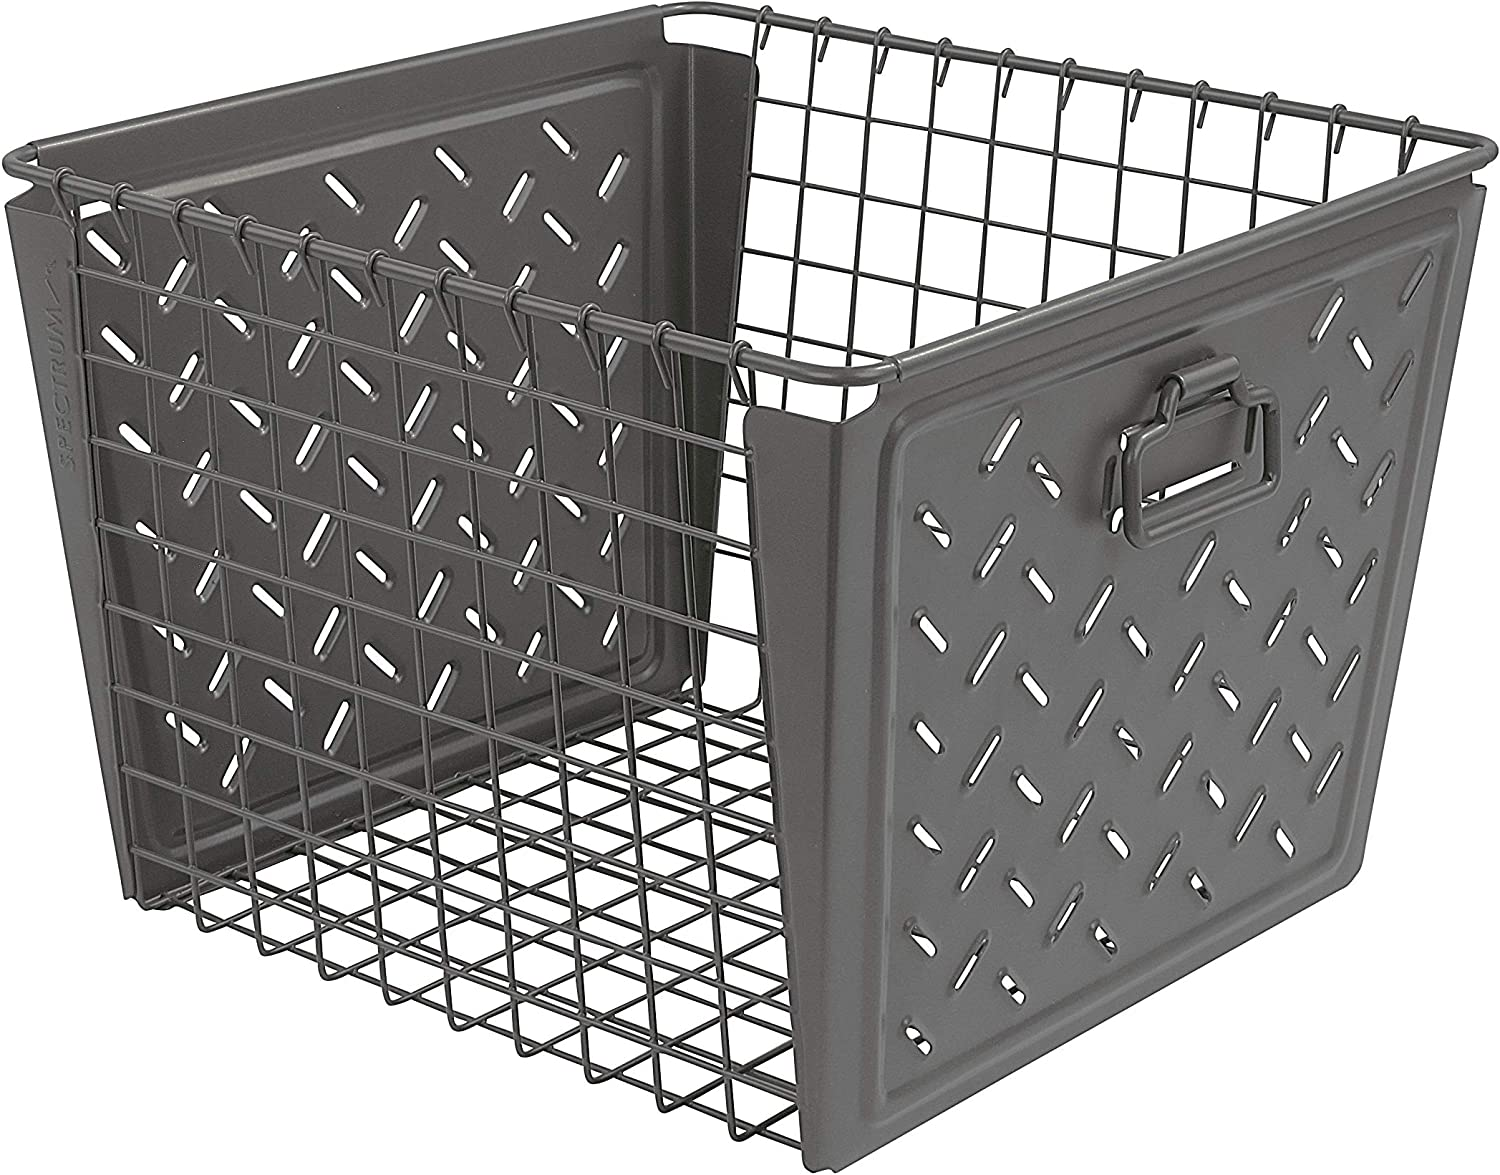 Spectrum Diversified Macklin, Stamped Steel & Wire Basket for Closet & Cubby Storage Vintage-Inspired Design with Customizable Label Plate, Large, Gray